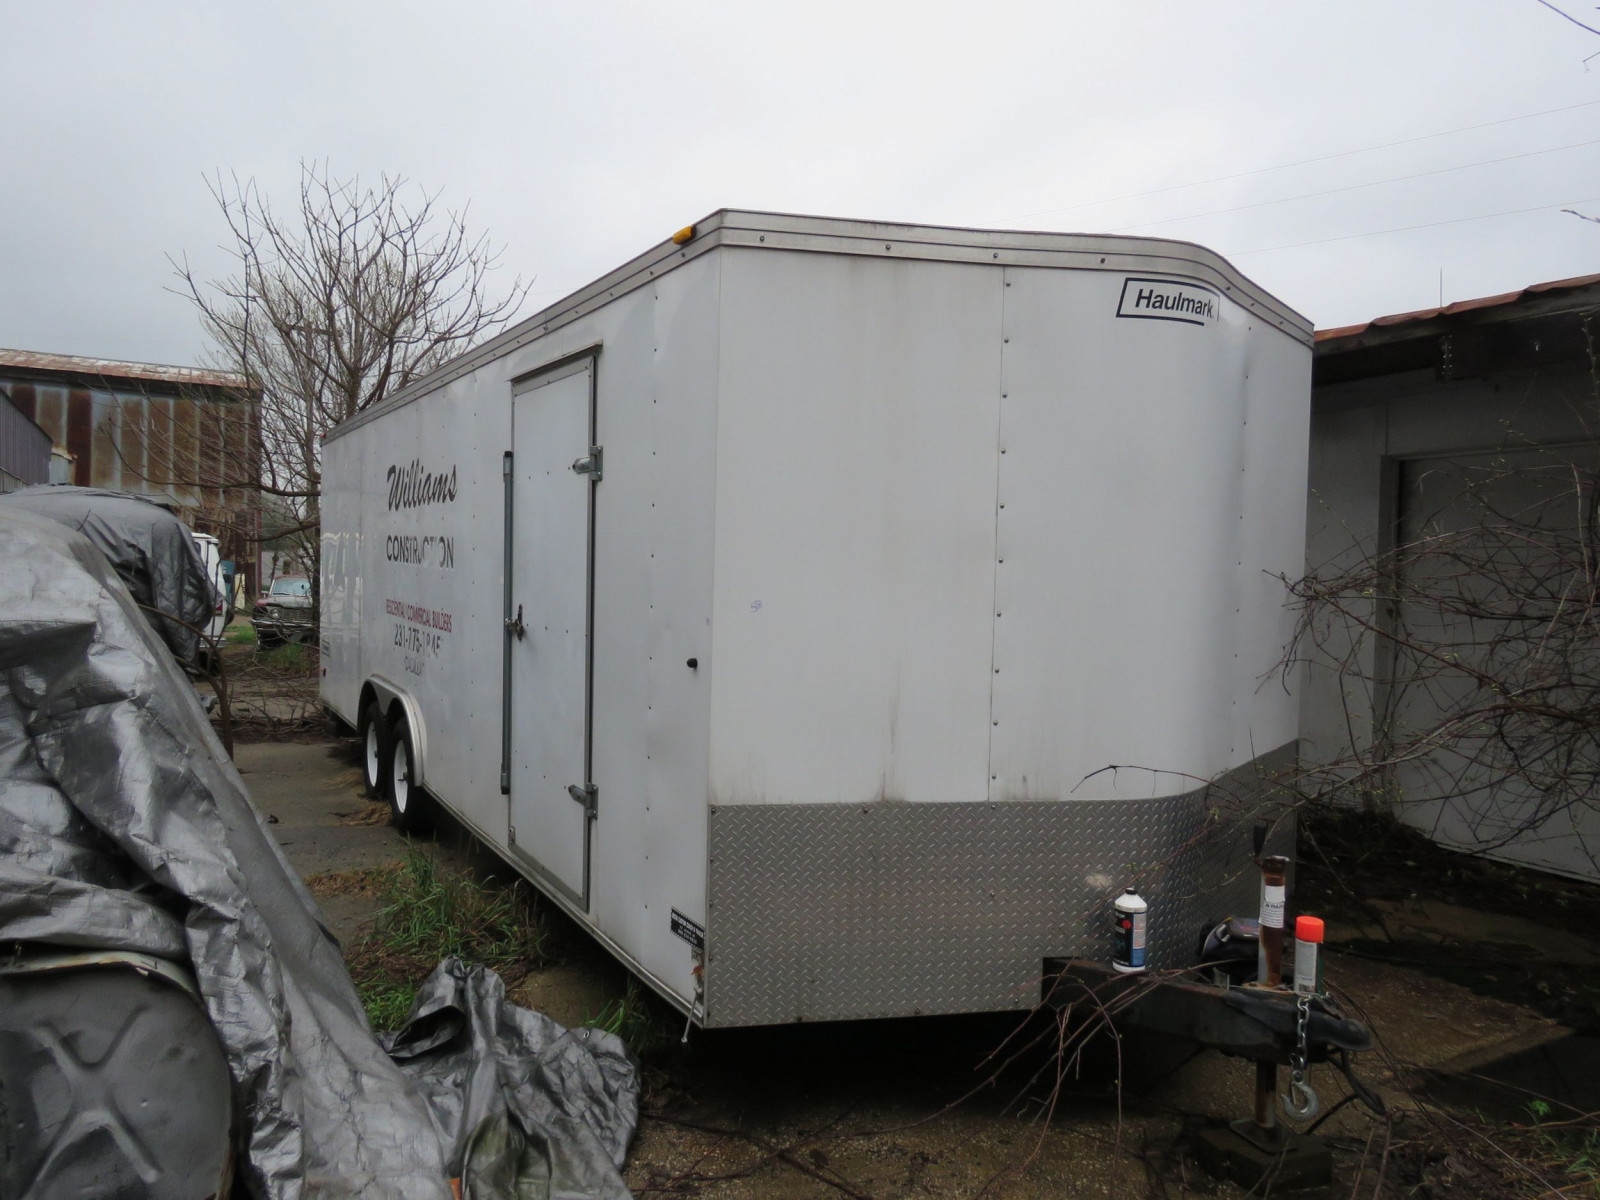 Haulmark Enclosed Trailer - Image 1